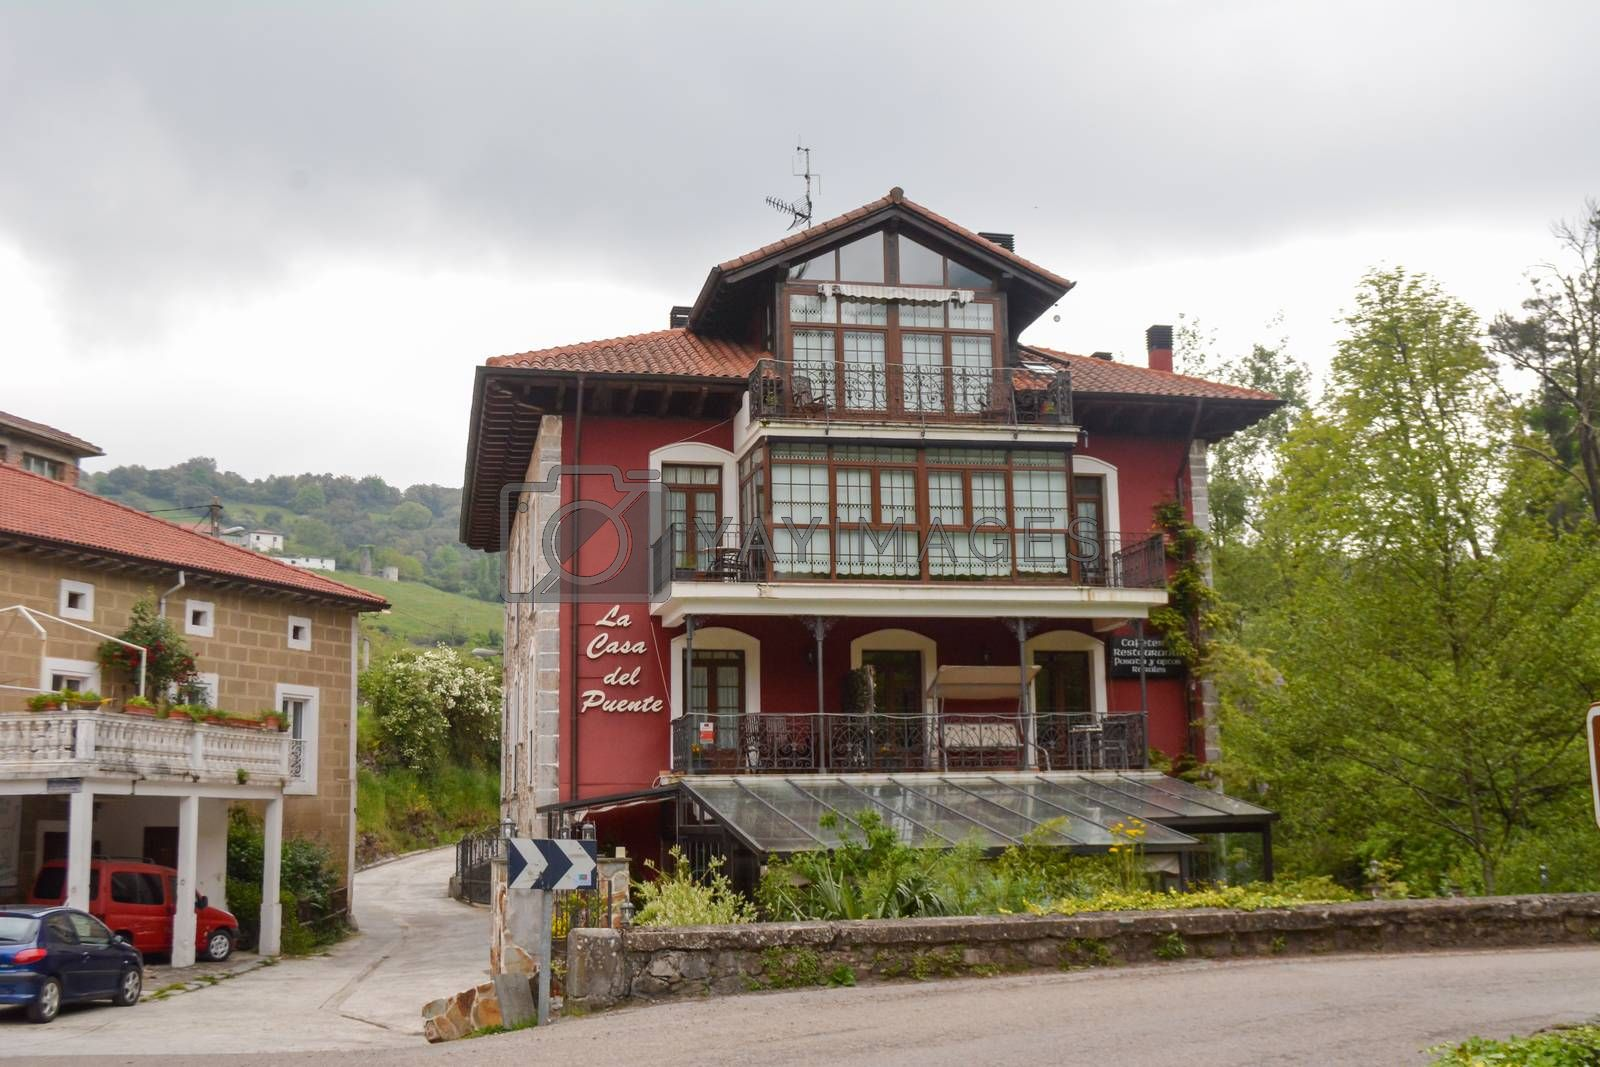 Regules, Spain, May 2018: Street view on hotel and bed and breakfast Casa Del Puente next to gandara river